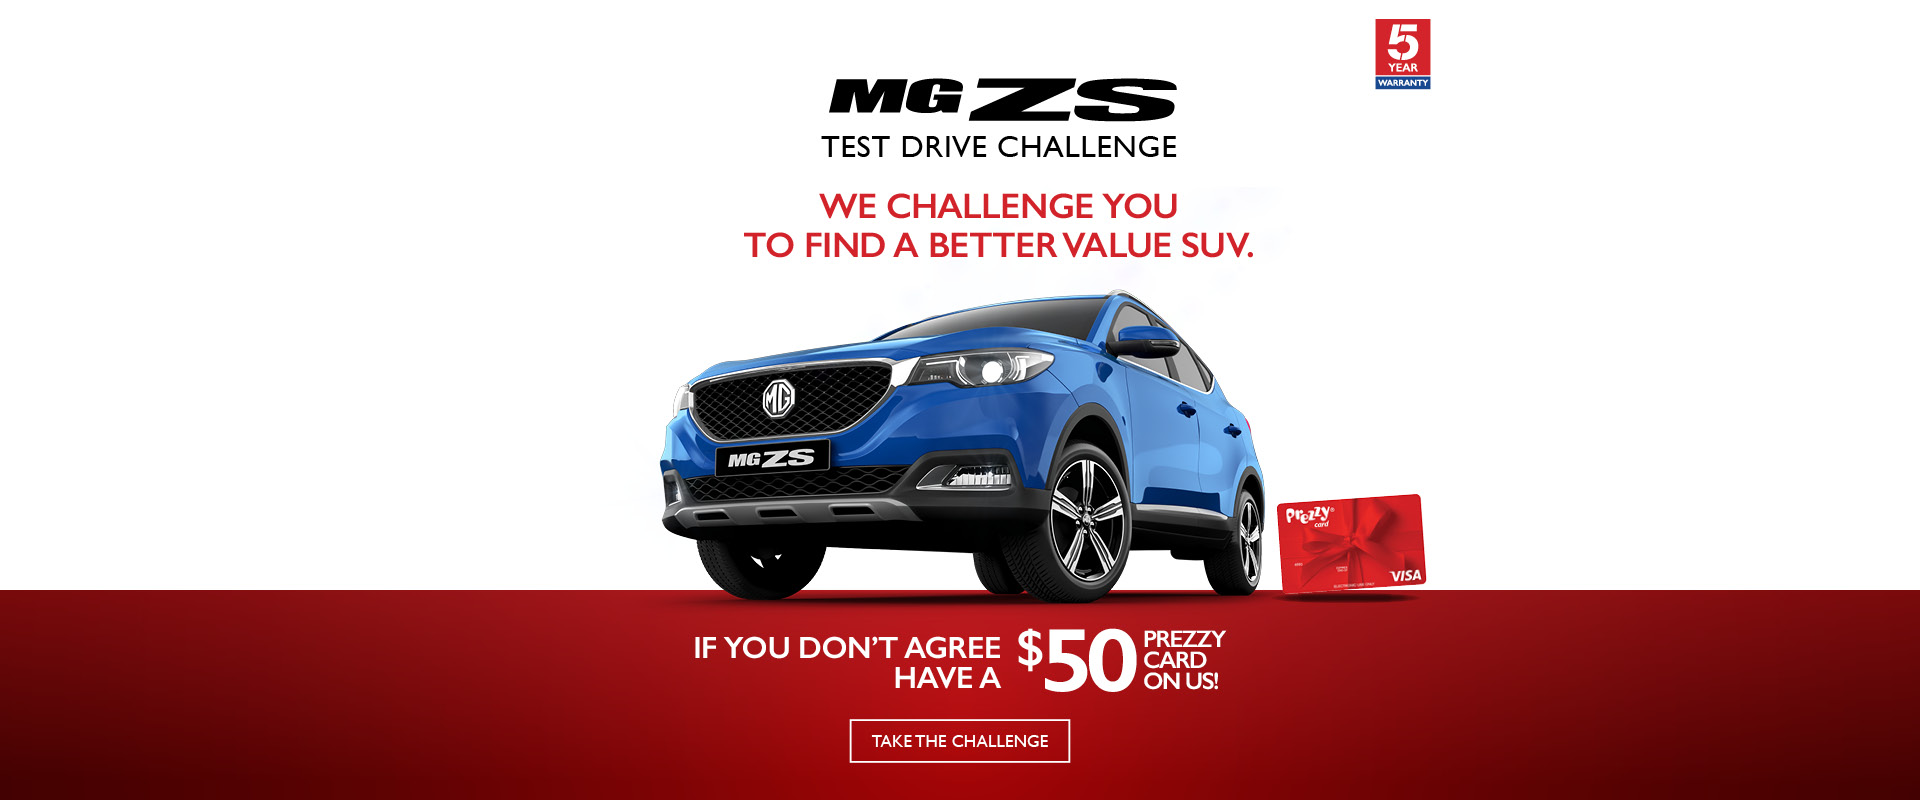 MG ZS Test Drive Challenge. We challenge you to find a better value SUV.